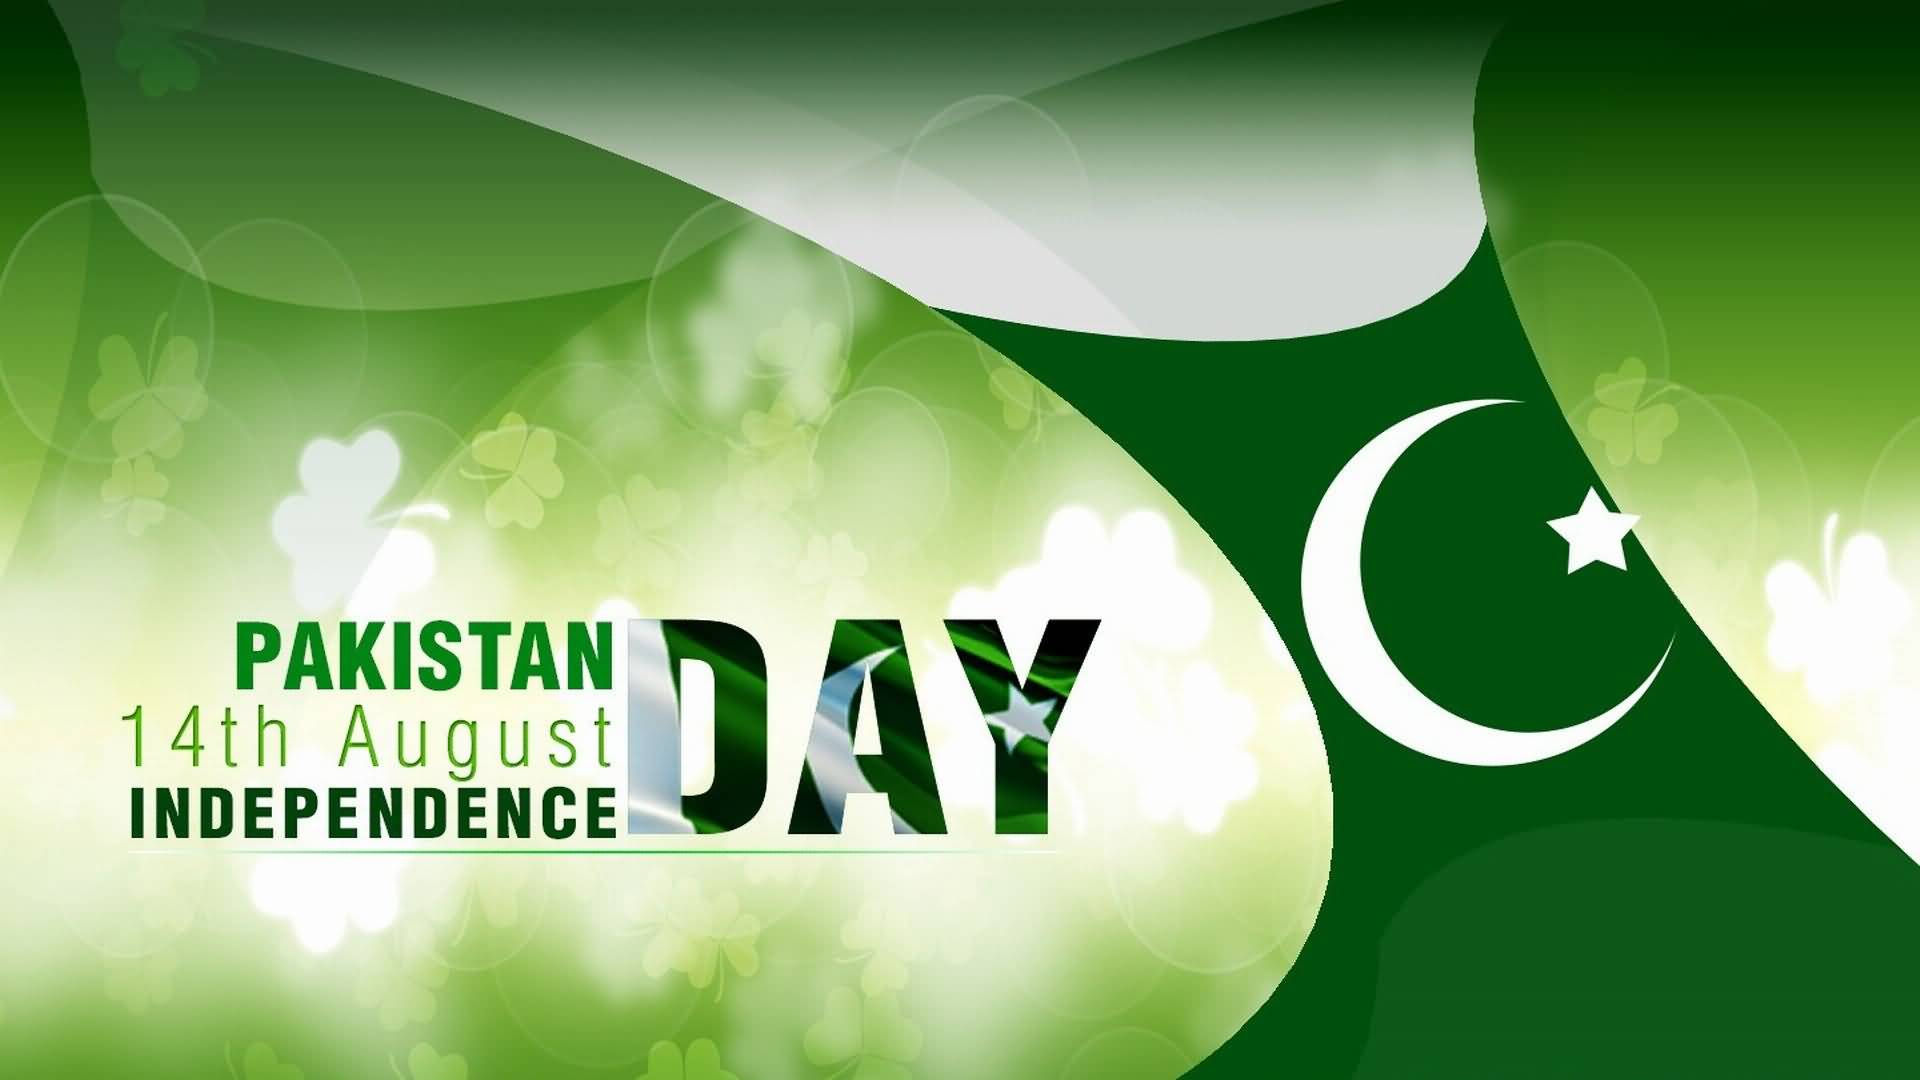 happy independence day pakistan essay Pakistan's independence day is celebrated annually on 14th august send happy independence day 2013 greetings and messages to your friends and family.